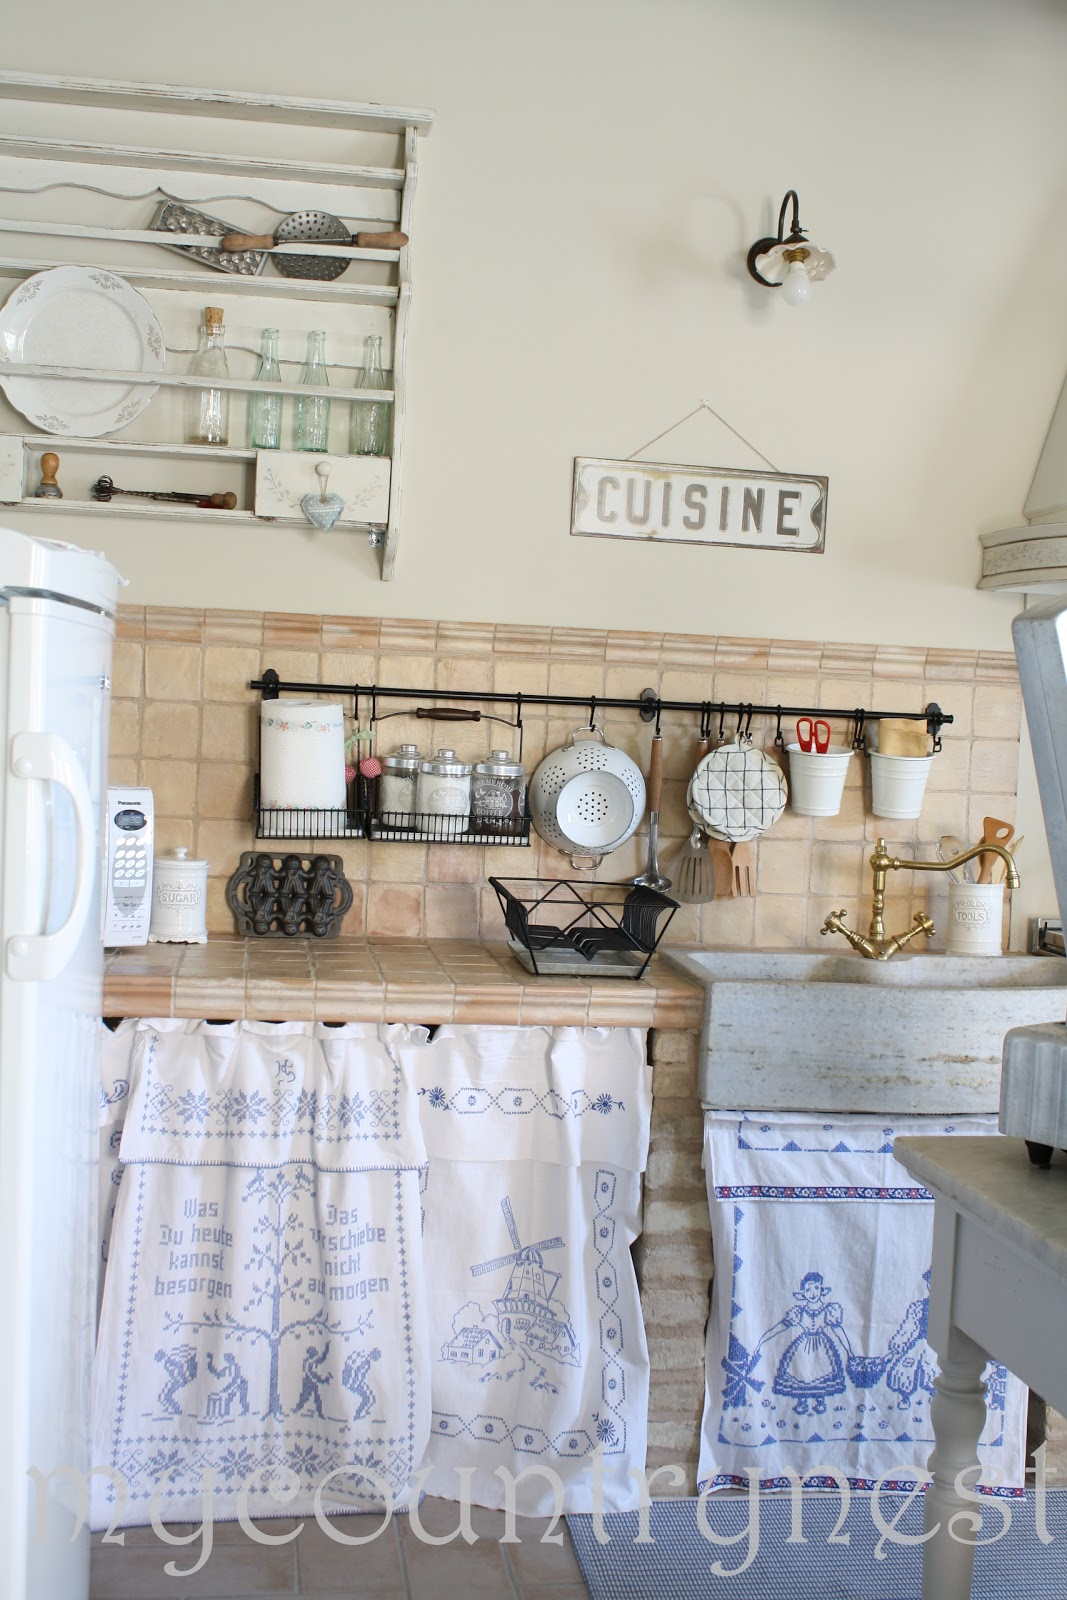 ... vintage style, some country chic, and here it is, our B&B kitchen